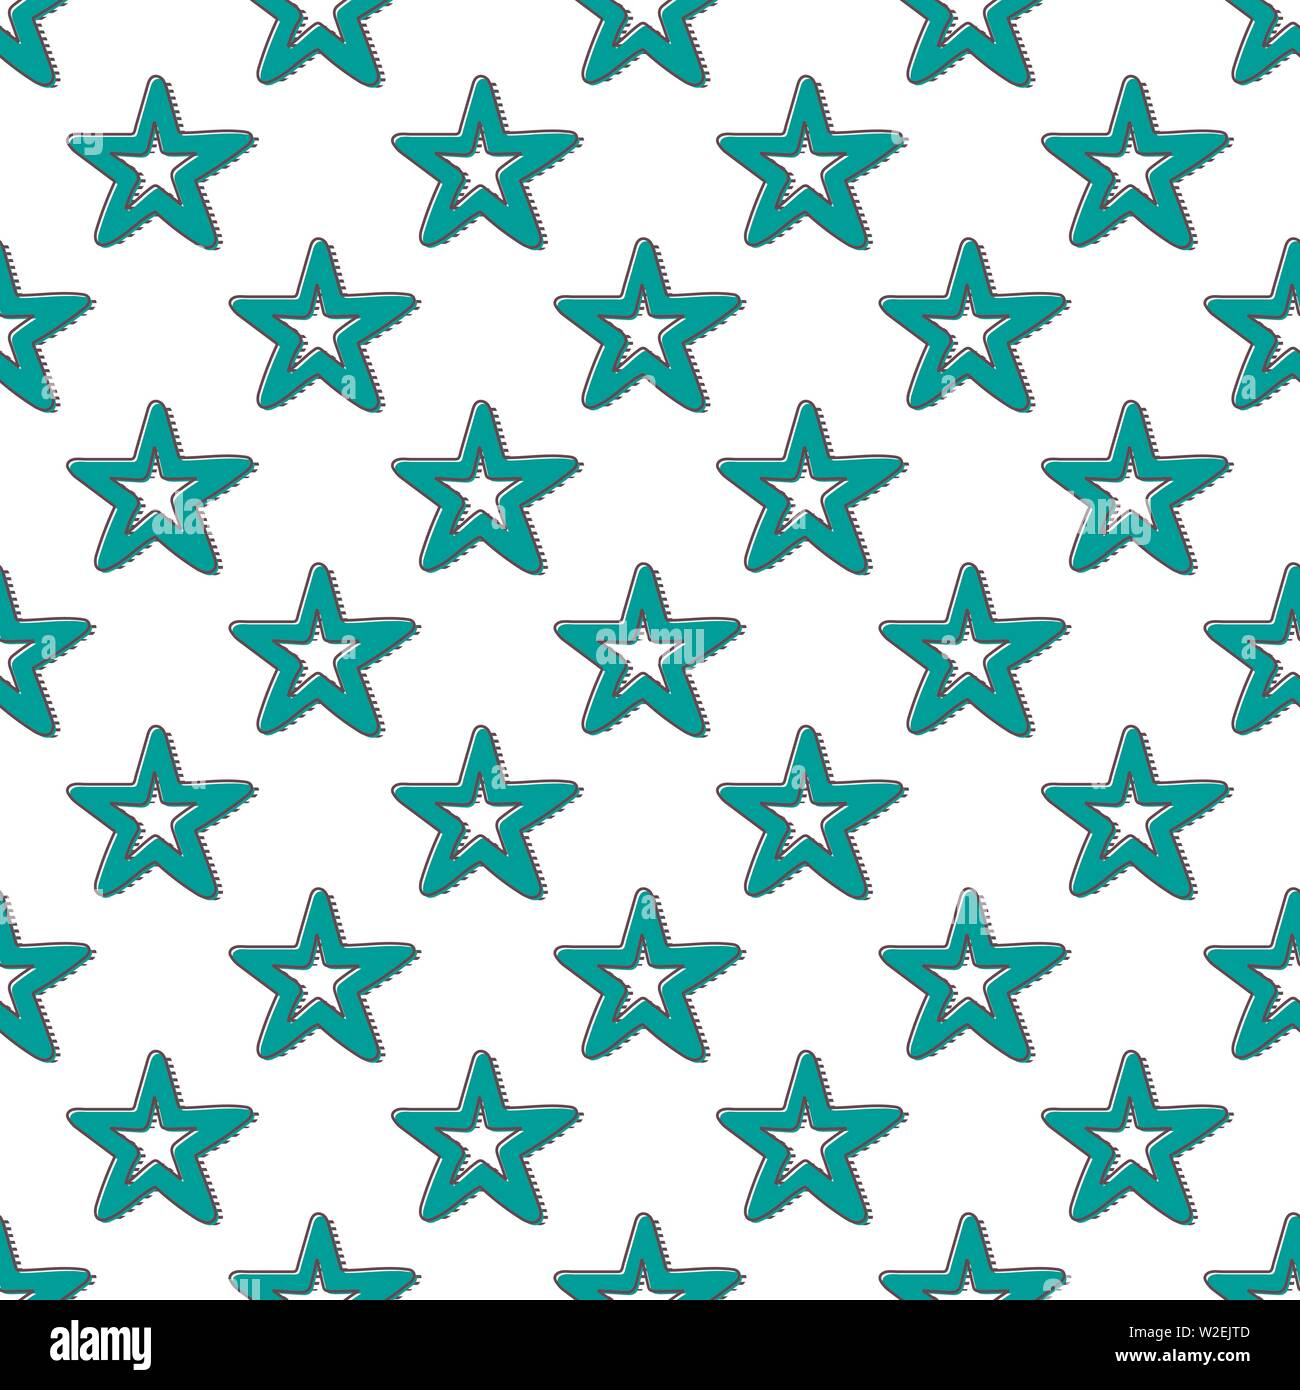 Retro stars pattern  Abstract geometric background in 80s